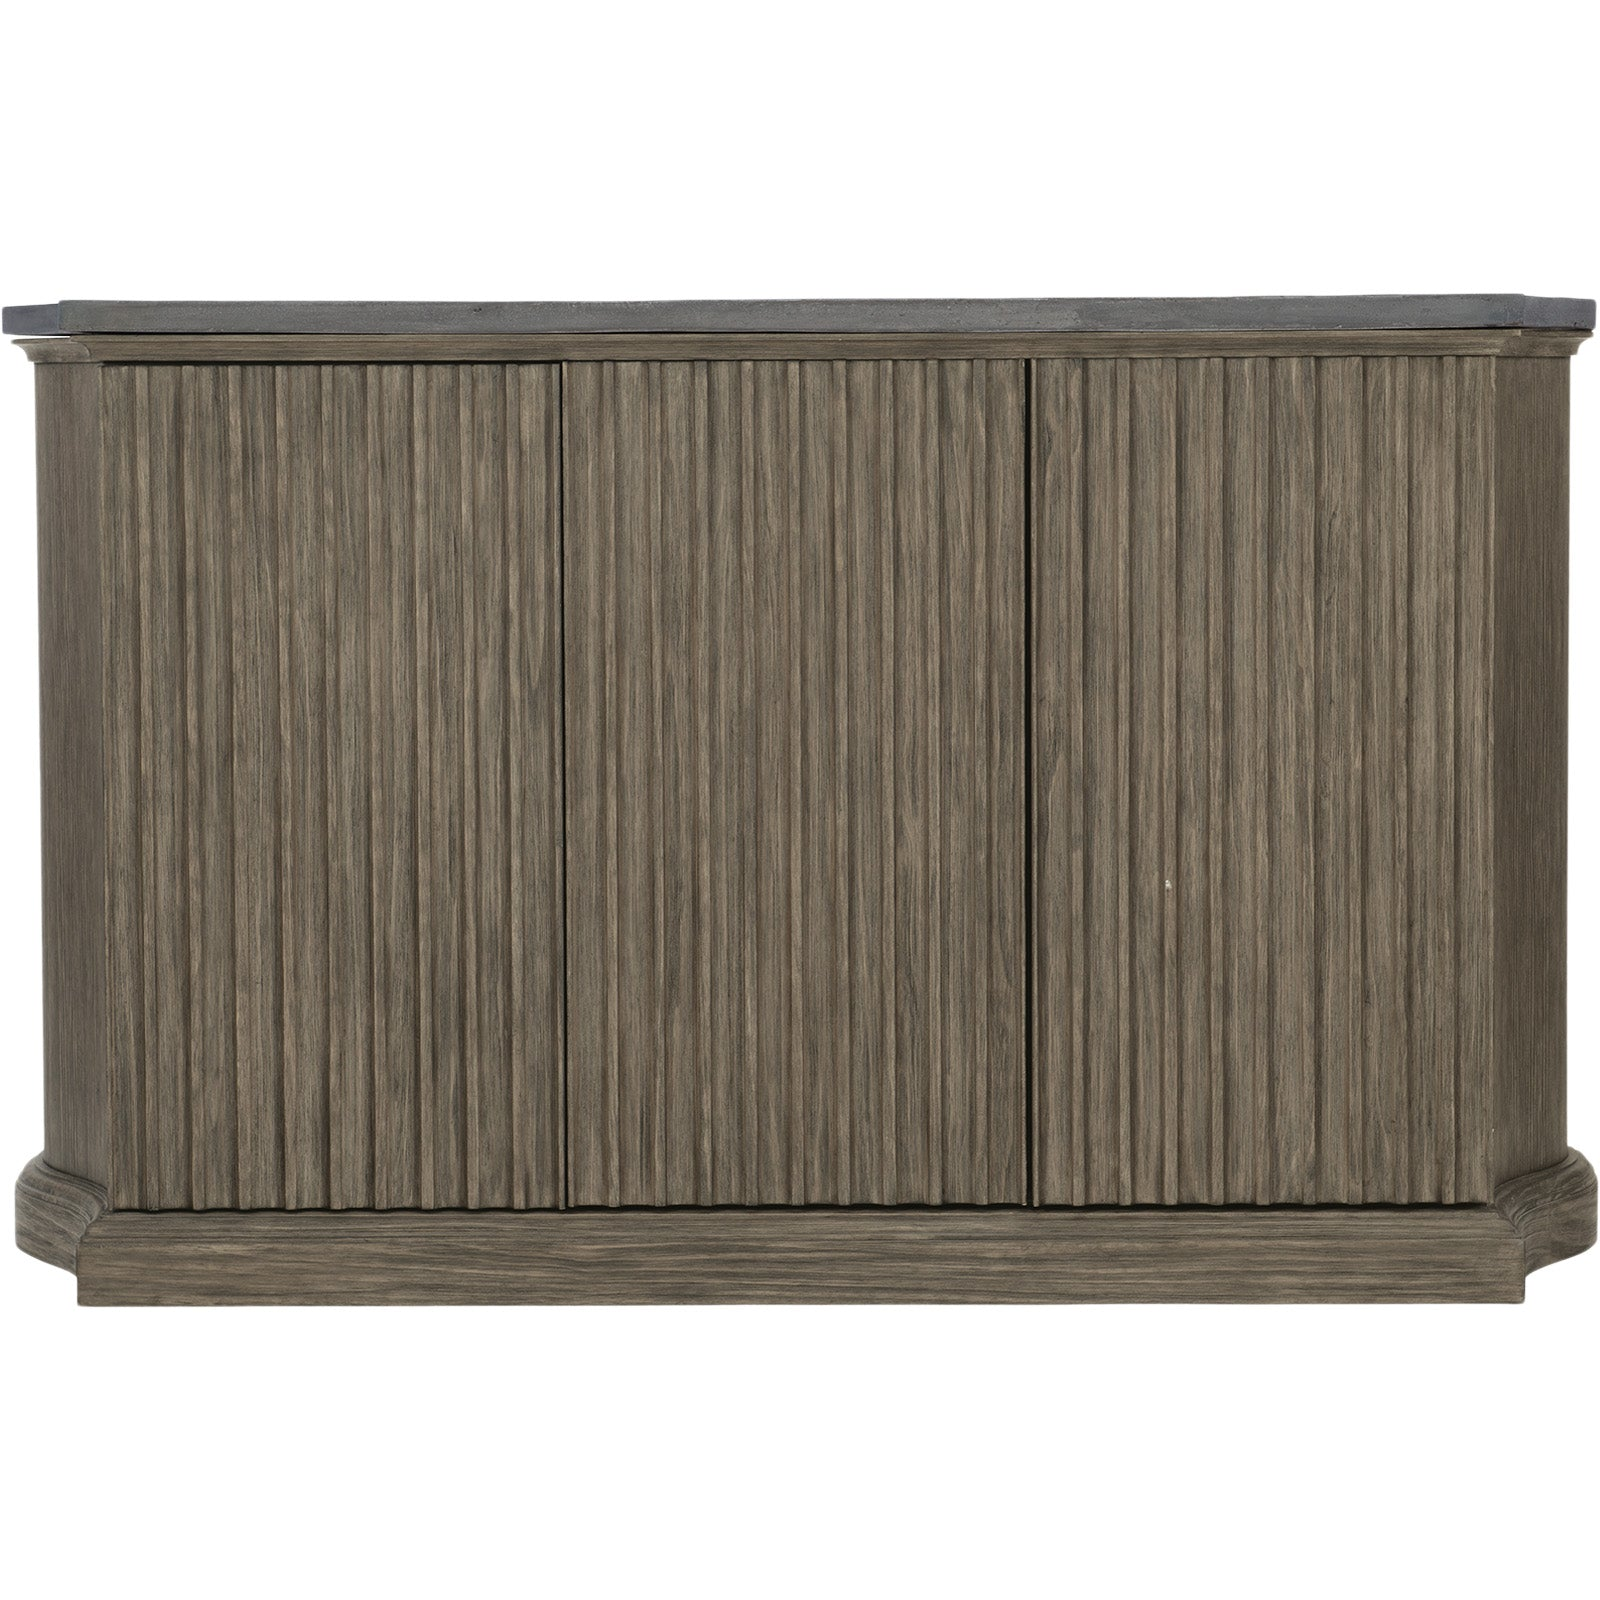 Canyon Ridge Sideboard - Bernhardt